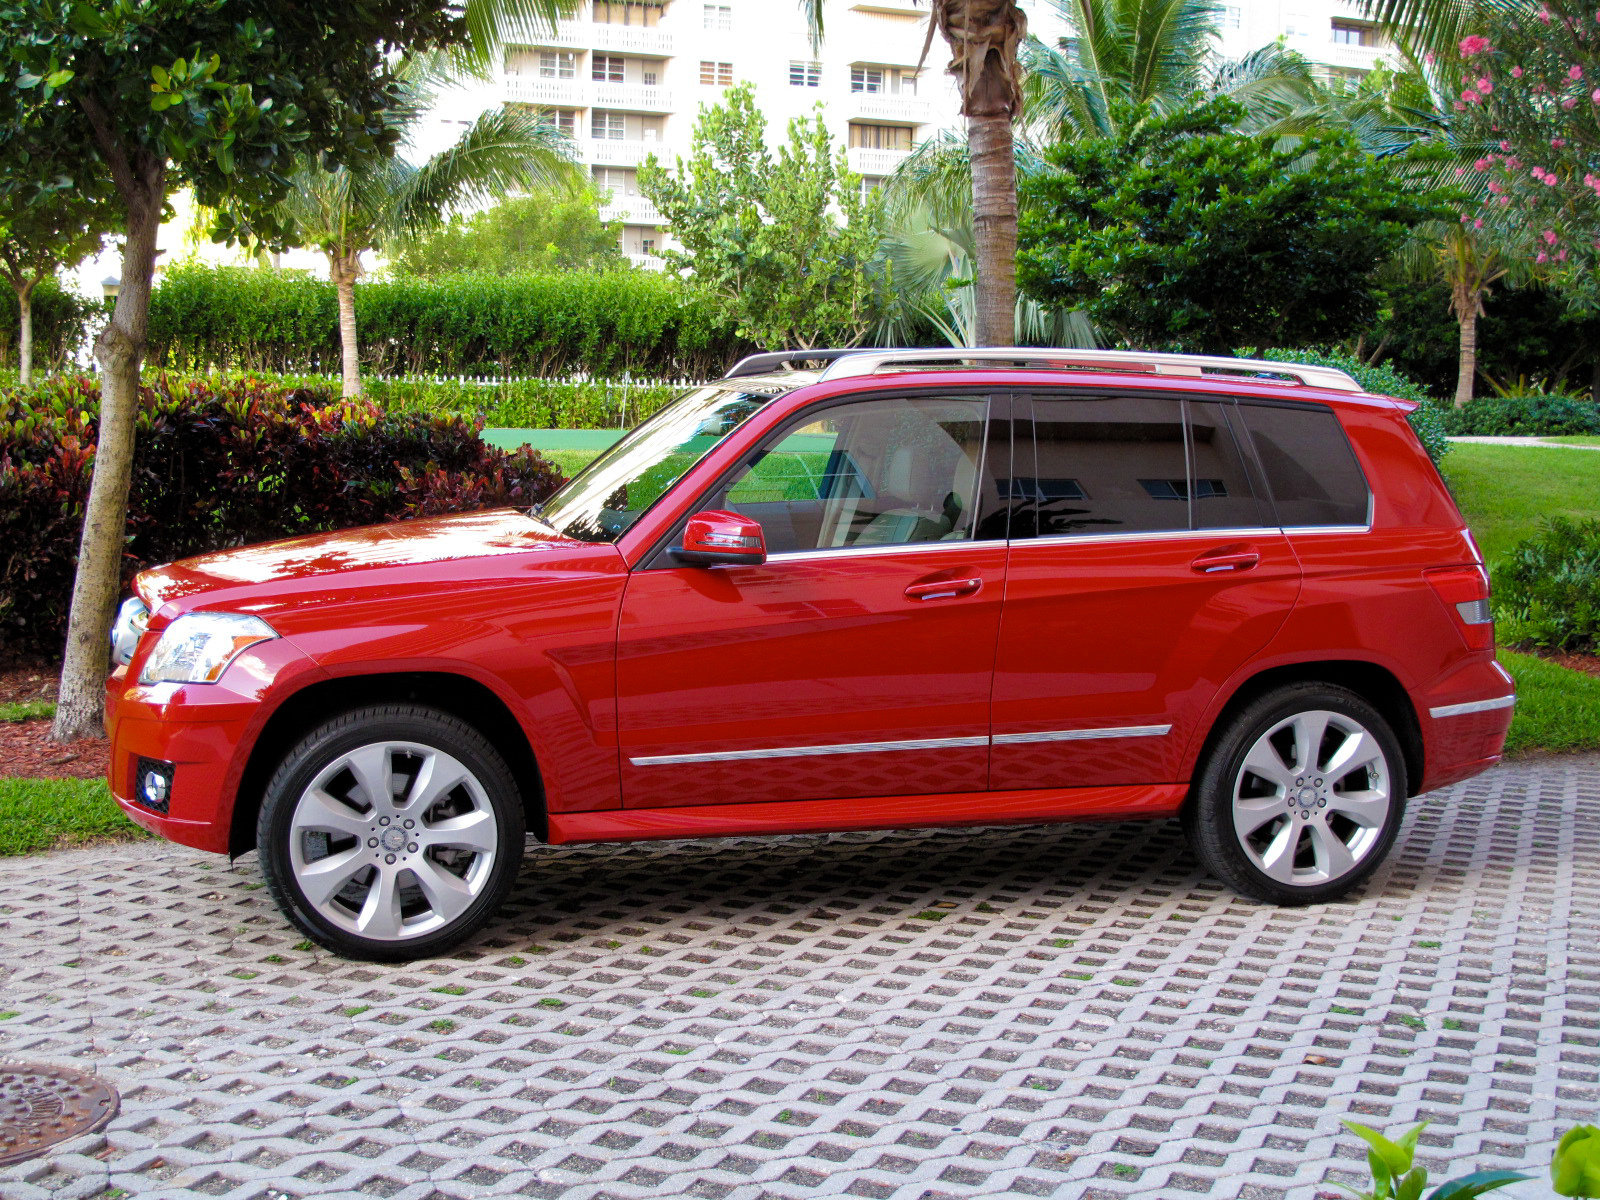 2010 mercedes benz glk 350 picture 344503 car review. Black Bedroom Furniture Sets. Home Design Ideas